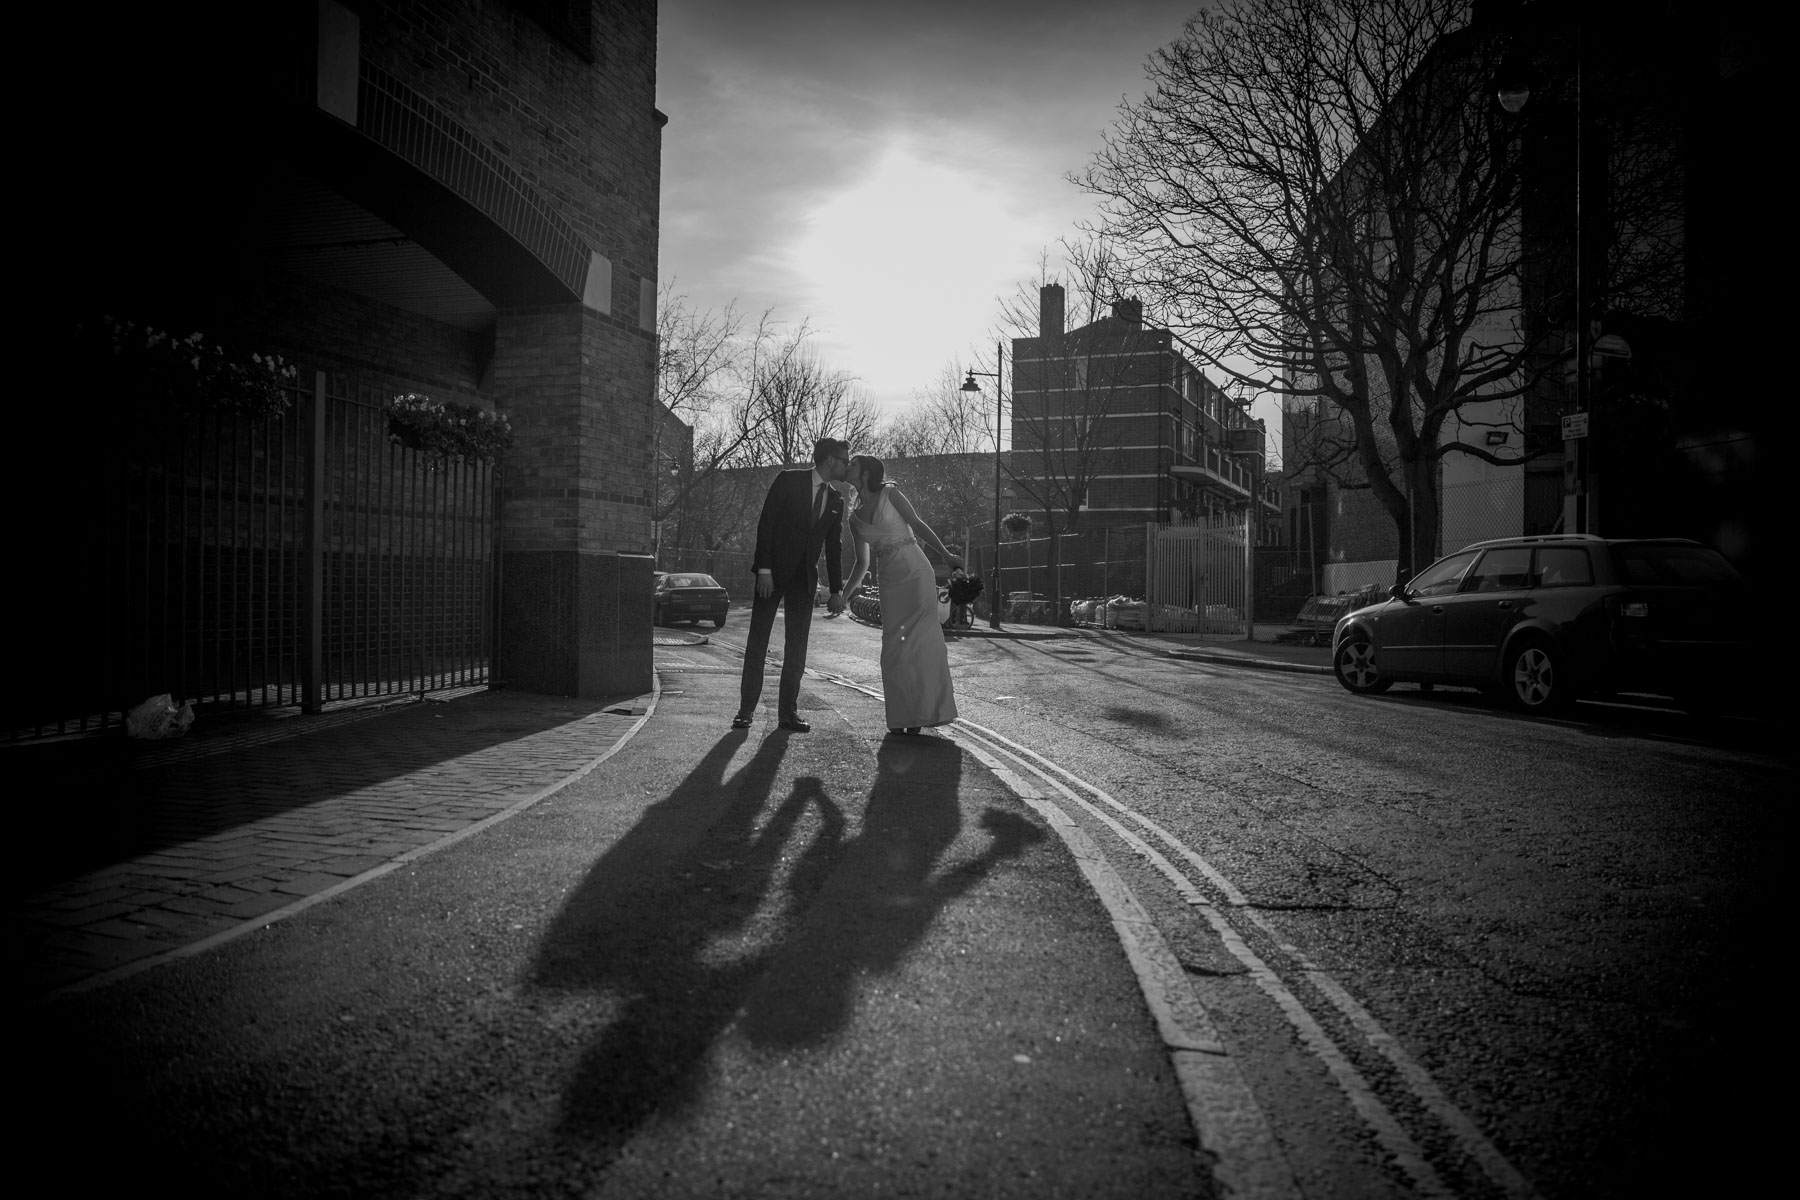 London Documentary Wedding Photography by Richard Murgatroyd